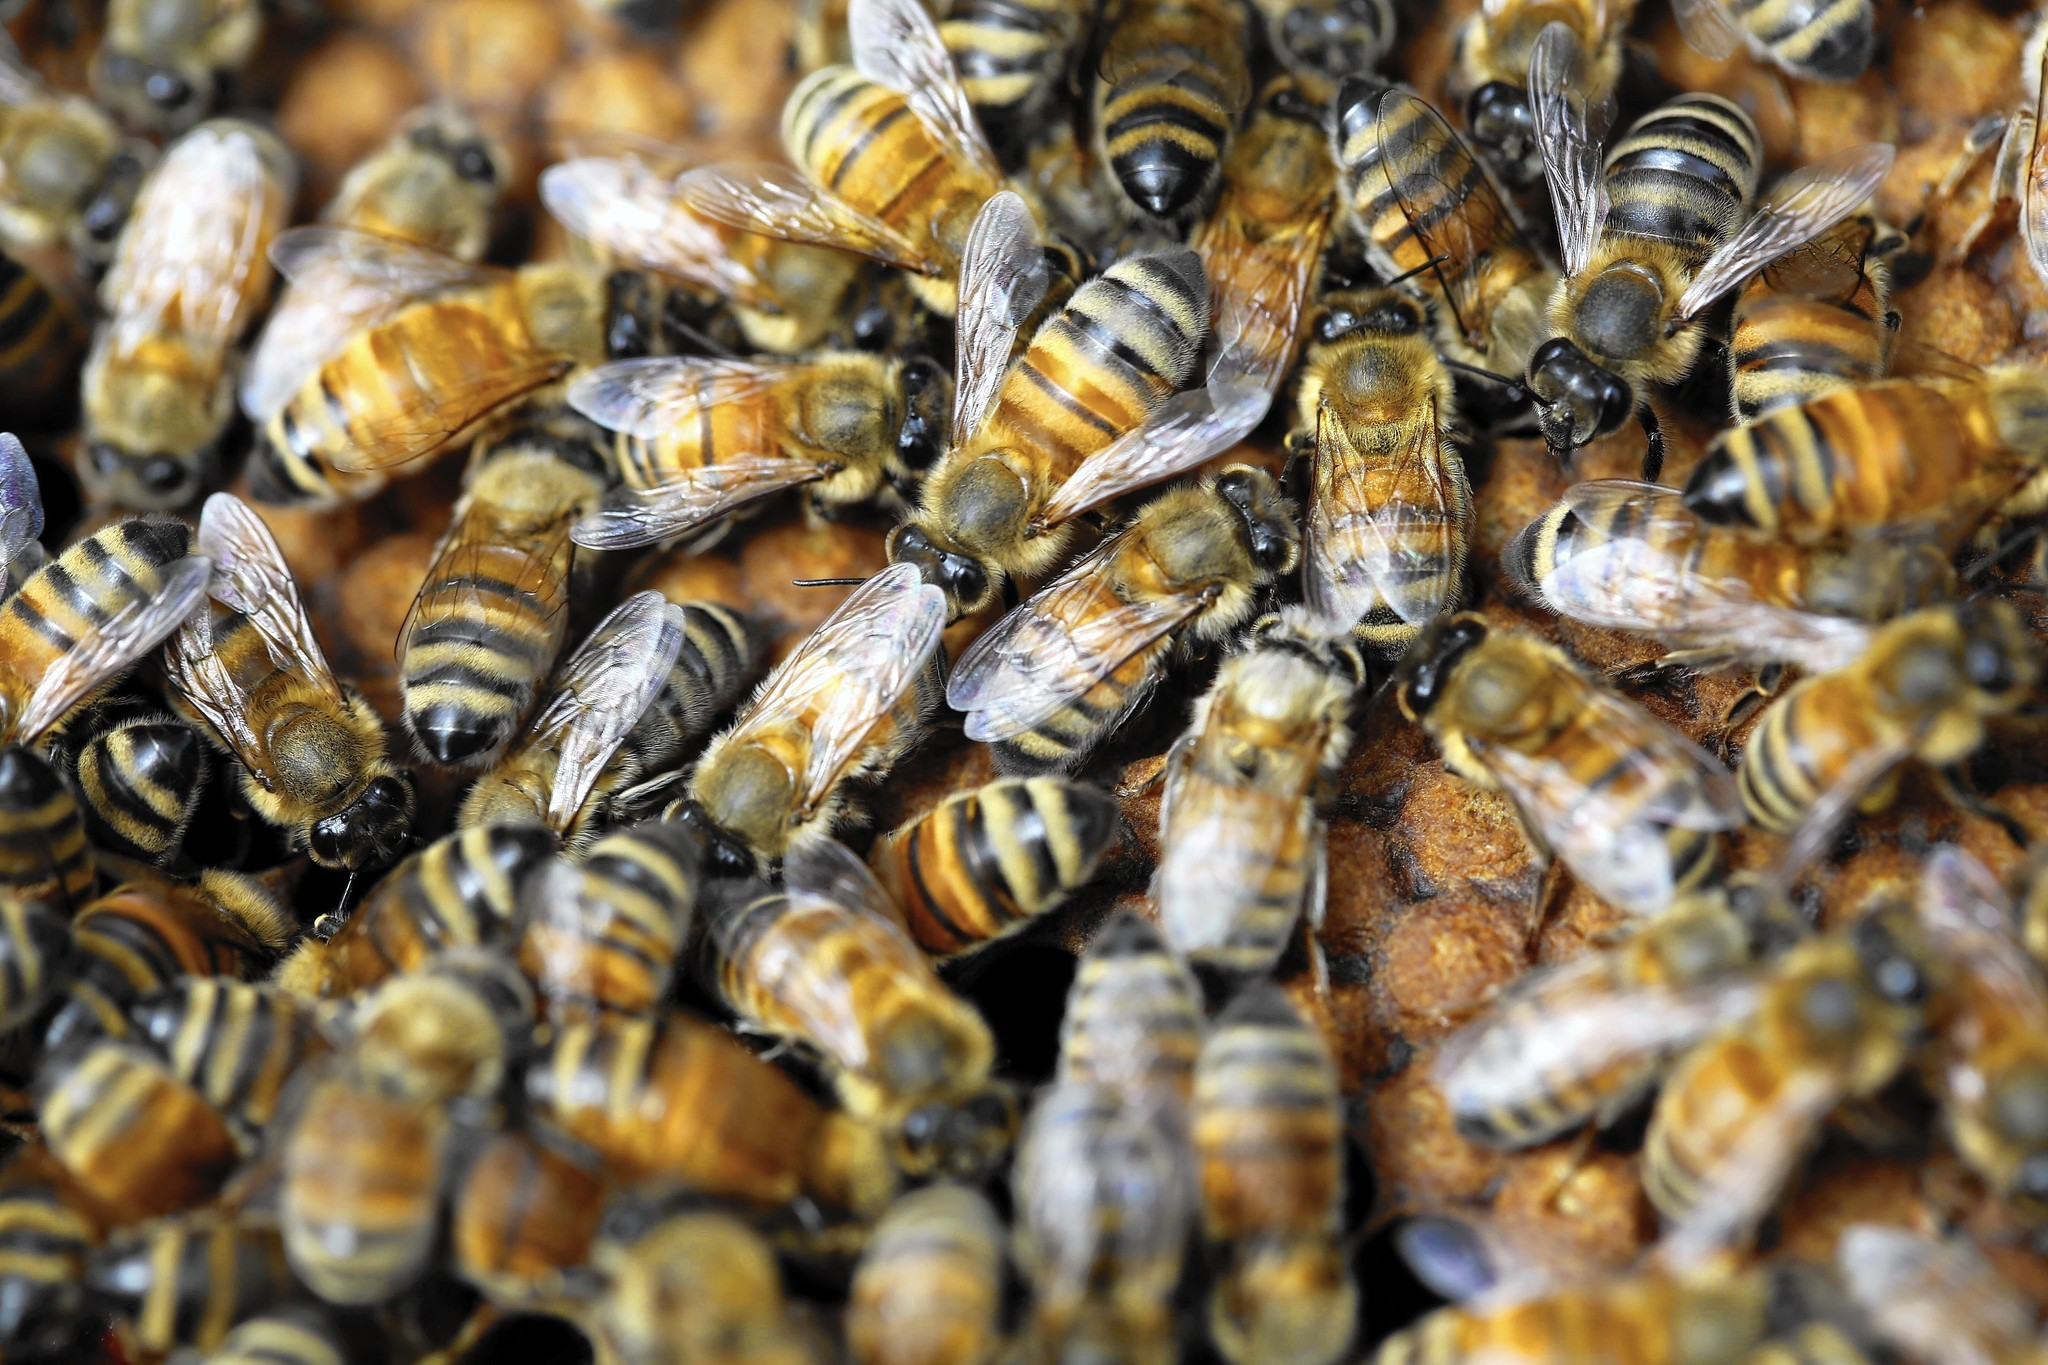 Unprecedented scientific report says decline of pollinators a threat to food security